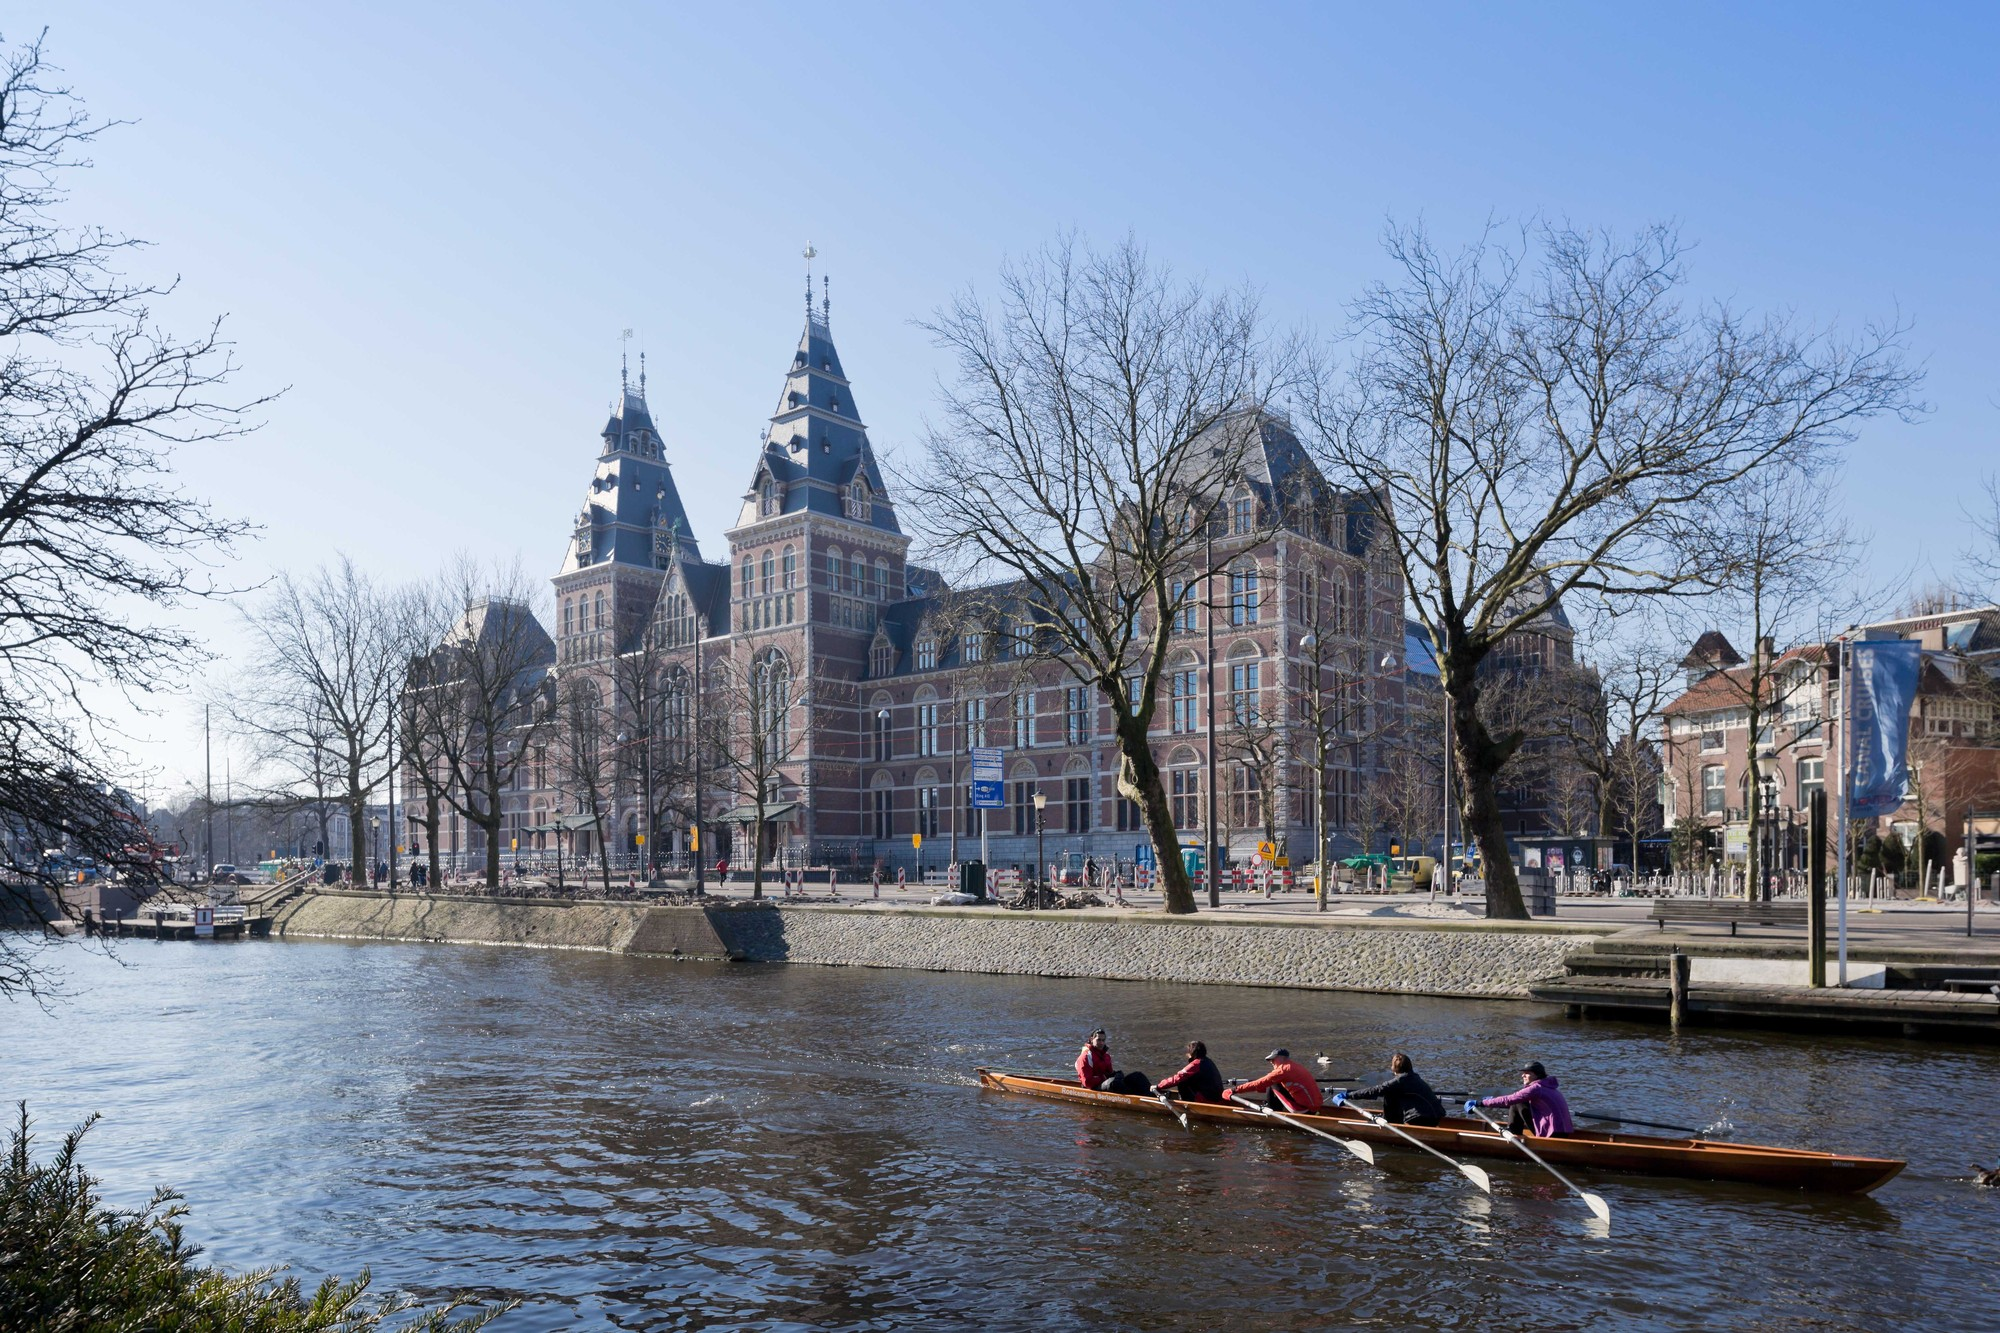 Courtesy of Rijksmuseum / View across the Singelgrachtkering Canal. Image © Iwan Baan